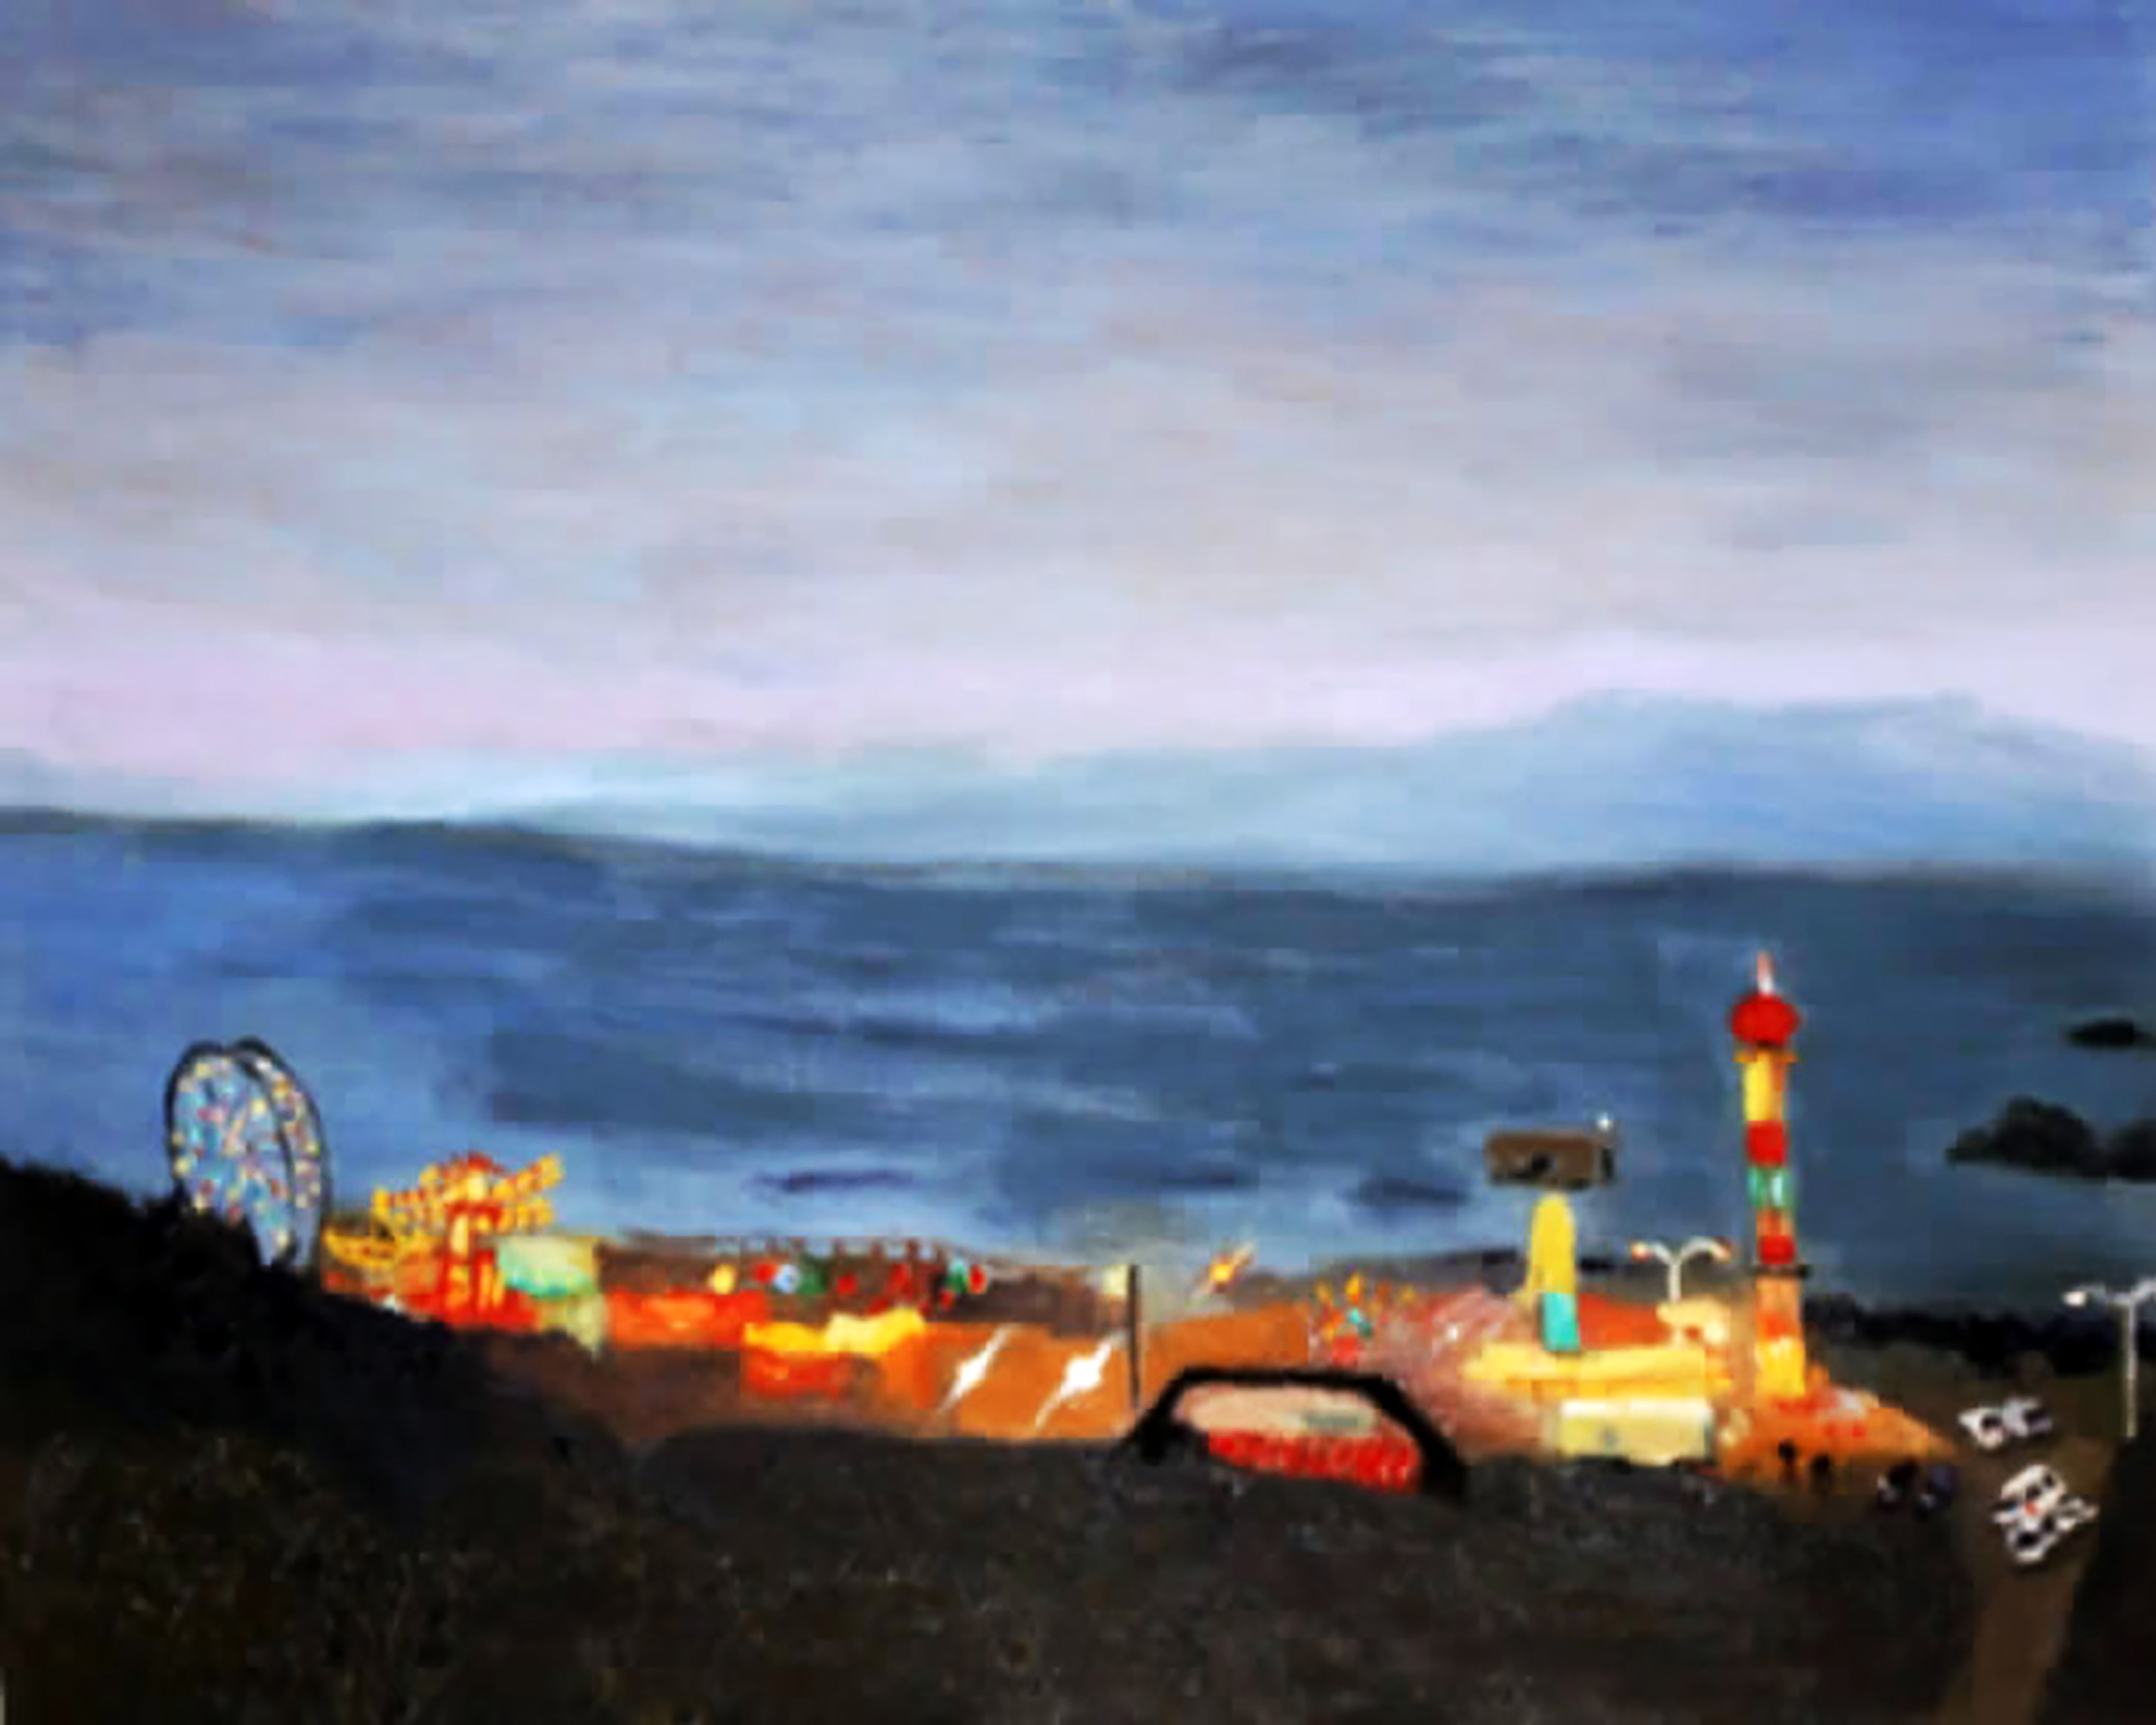 Brent Harris Bright Lights Pacific Ocean 16 x 20 Oil $800